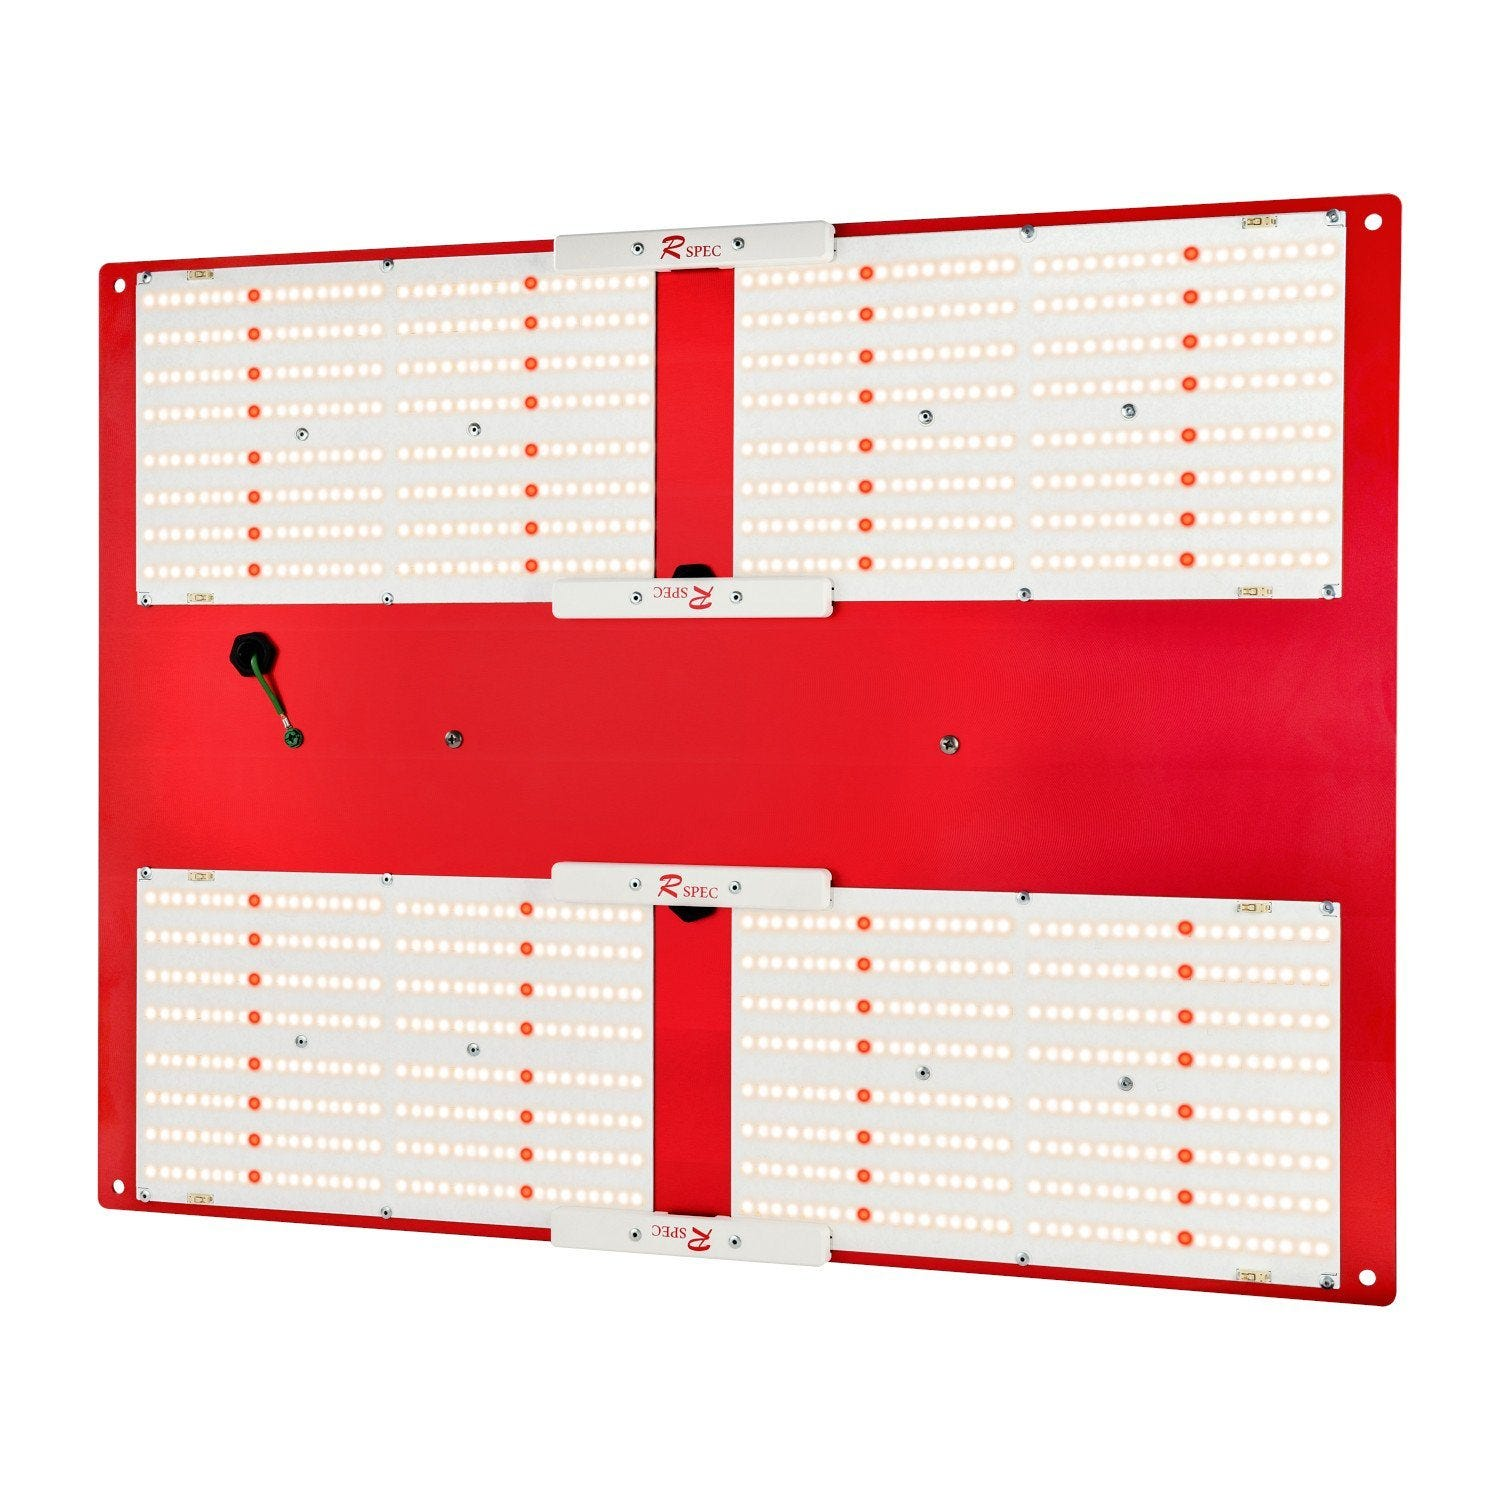 Horticulture Lighting Group HLG550 V2 R spec - 500W LED Grow Light - 240V w/ LED Glasses Horticulture Lighting Group 500W 4 Quantum Boards HLG 550 V2 - High Efficiency - R Spec Horticulture Lighting Group's HLG550 V2 indoor horticulture LED LampOur HLG550 V2 R spec Commercial Indoor Horticulture LED grow light is designed to replace a single-ended 1000watt HID. Each HLG-550 V2 uses 4 of our custom designed full-spectrum high-efficiency white light quantum boards with Samsung LM301B and Deep Red LED 660nm. Comes in 3500K + 660nm (Flowering and Full Cycle with red) spectrum. This unit is dimmable, with wattage output from 200 to 480 watts. R Spec - 64 White LEDs have been replaced with red LEDs Top Features High efficiency white light Quantum Boards White Light Full Spectrum for better results Reliable passive cooled design Better canopy light penetration with diffused light Ideal for veg and bloom Dimmable Power Supply included 3 Year Warranty Specifications: Power250-500 Watts Voltage Range90-277 VAC LED1152 pcs Samsung 301B - 64 Red Flowering Footprint4.5'X4.5' or 4'X5' Veg Footprint6'X6' System Efficiency171 Lm/W System PPF Efficacy 2.6-2.65 μmol/joule Total output1178.05 PPF Dimensions26 X20 x3  Recommended Mounting Height 22-32 inches